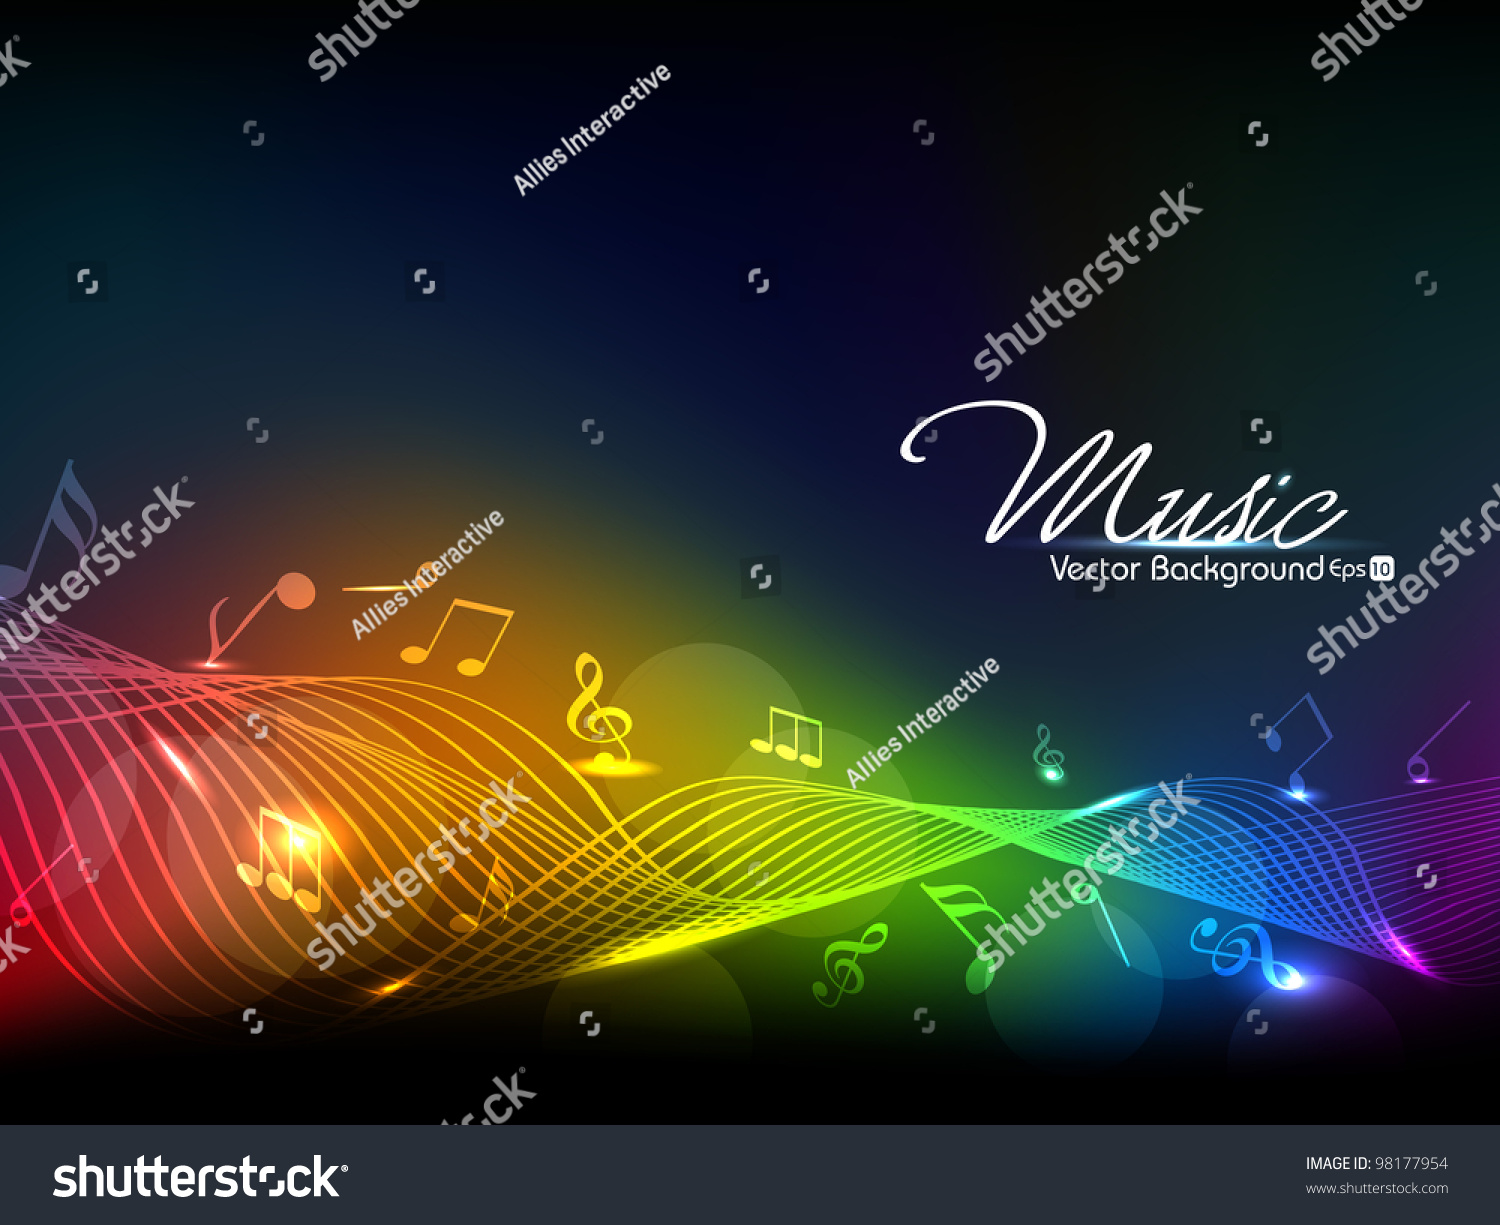 Vector Illustration Of Colorful Musical Wave Background